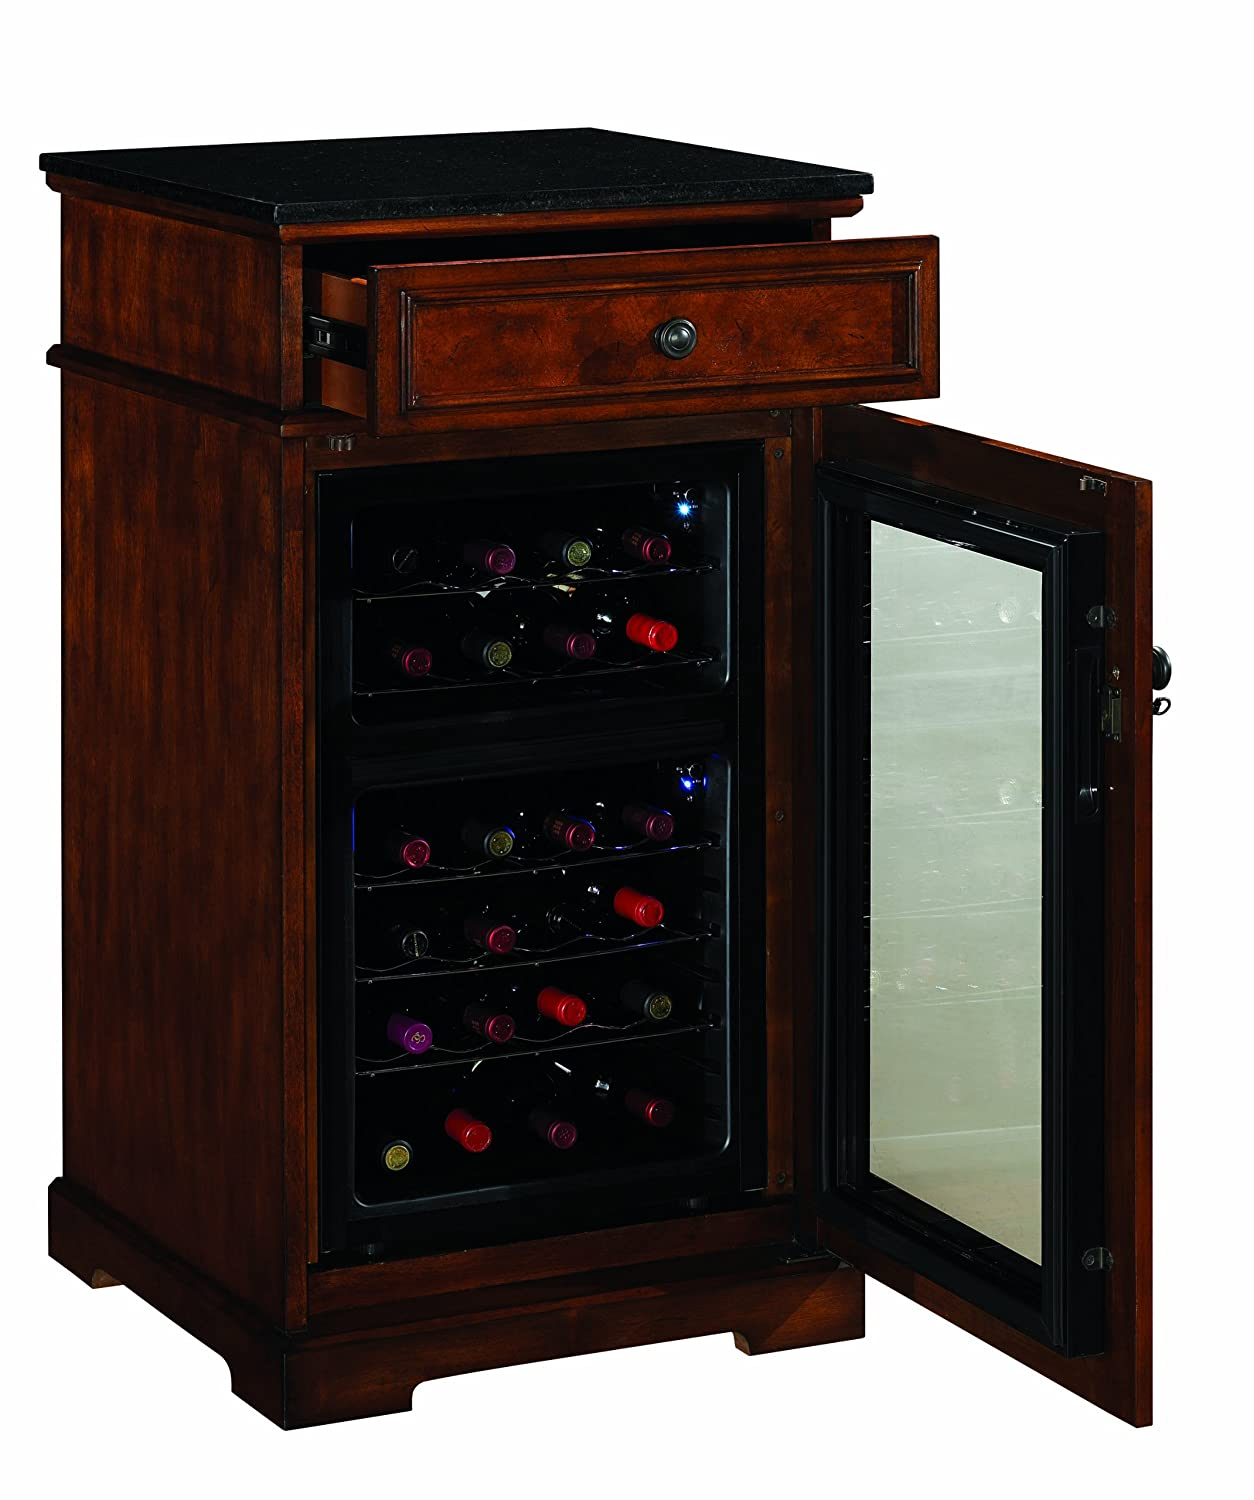 amazoncom madison thermoelectric wine coolers in rose cherry  - amazoncom madison thermoelectric wine coolers in rose cherry wine coolerfurniture cherry kitchen  dining